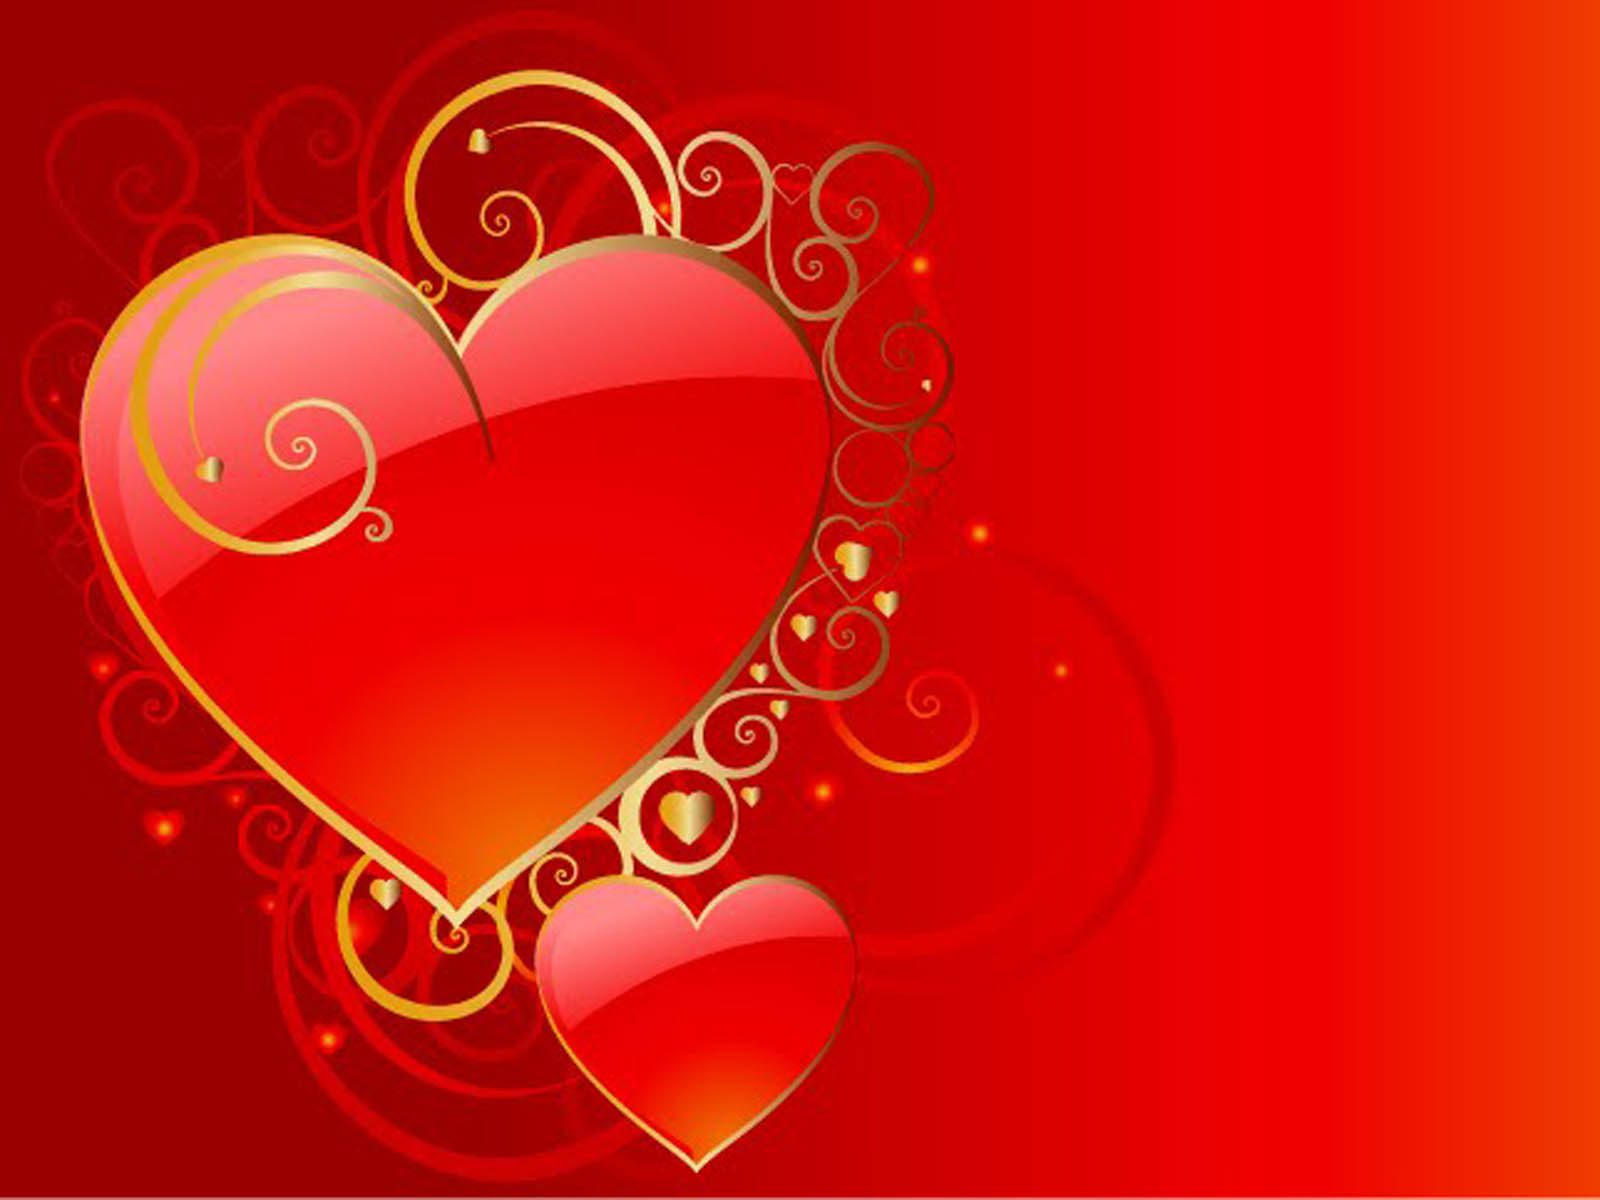 Love Wallpapers For Desktop : wallpapers: Love Heart Wallpapers